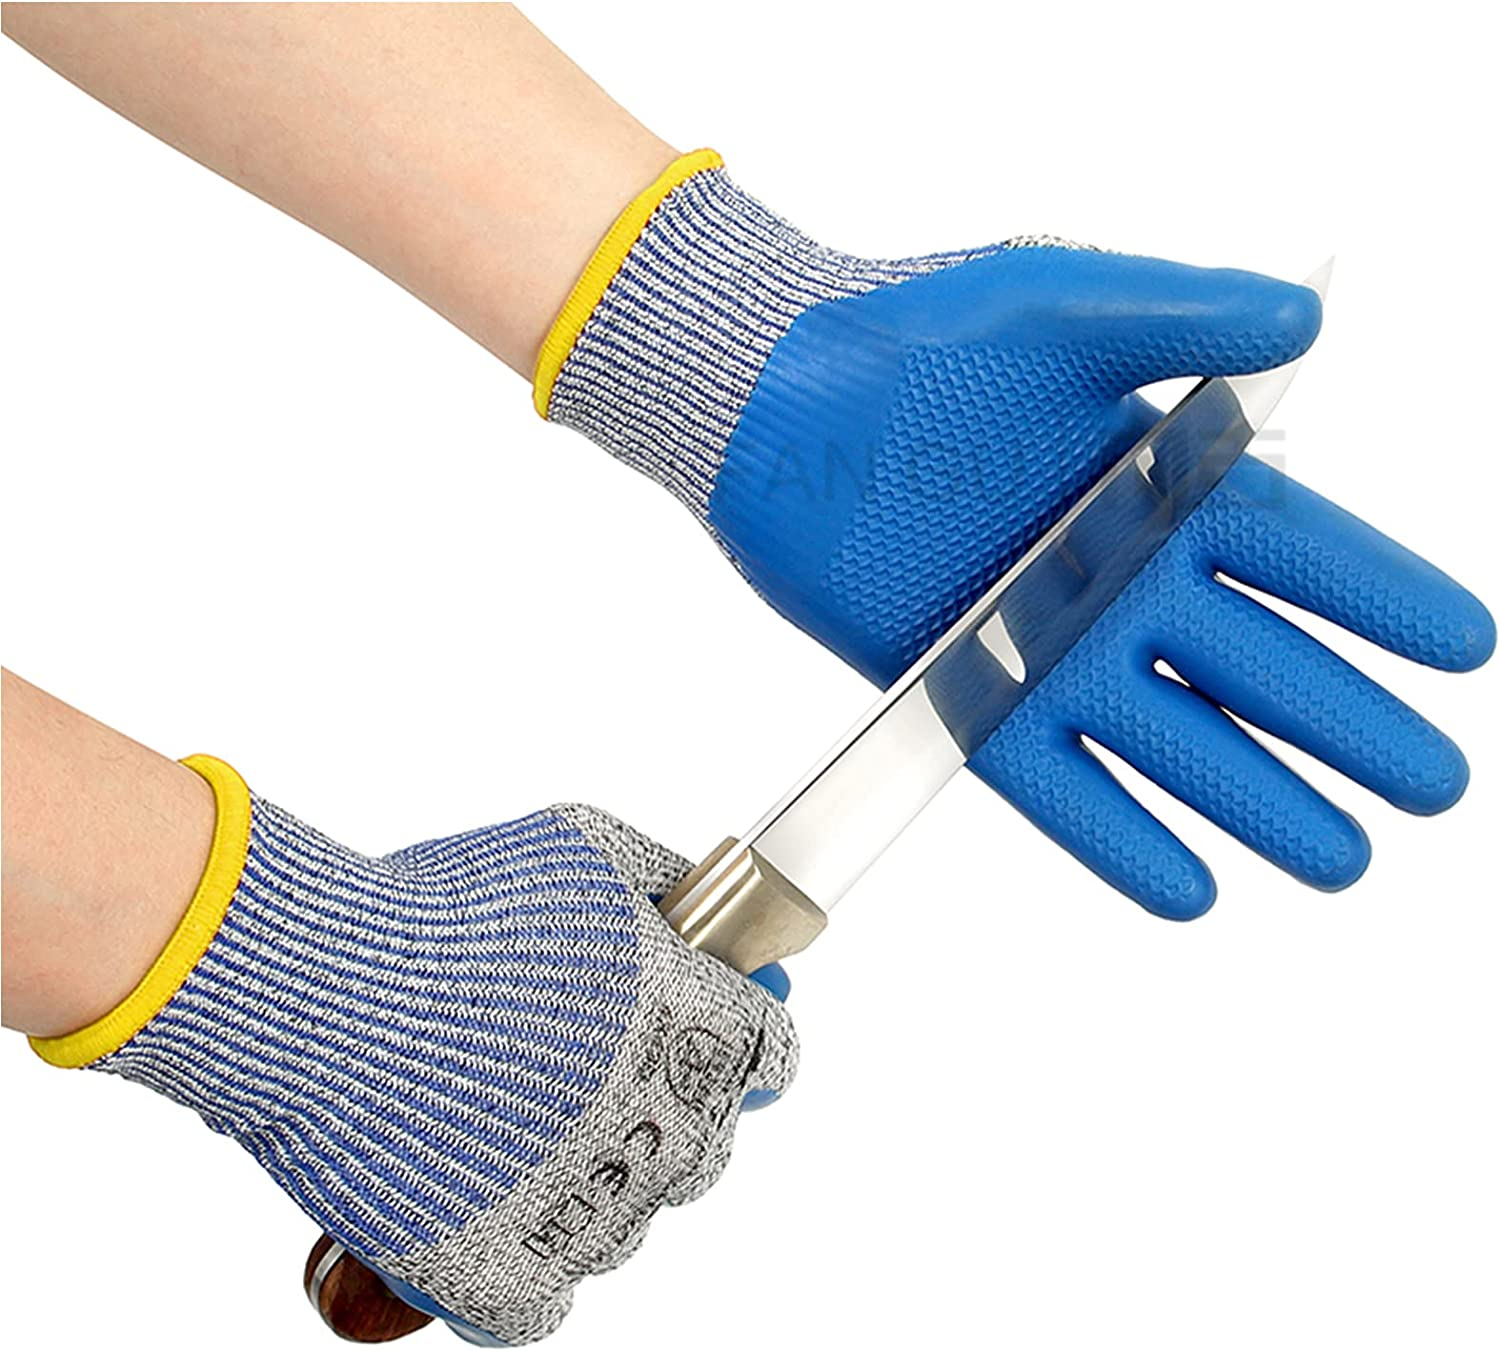 Double Cut Resistant Gloves Level 5 Protection,Latex Coated Semi-Waterproof Cutting Gloves ,Safety Cut Glove for Kitchen